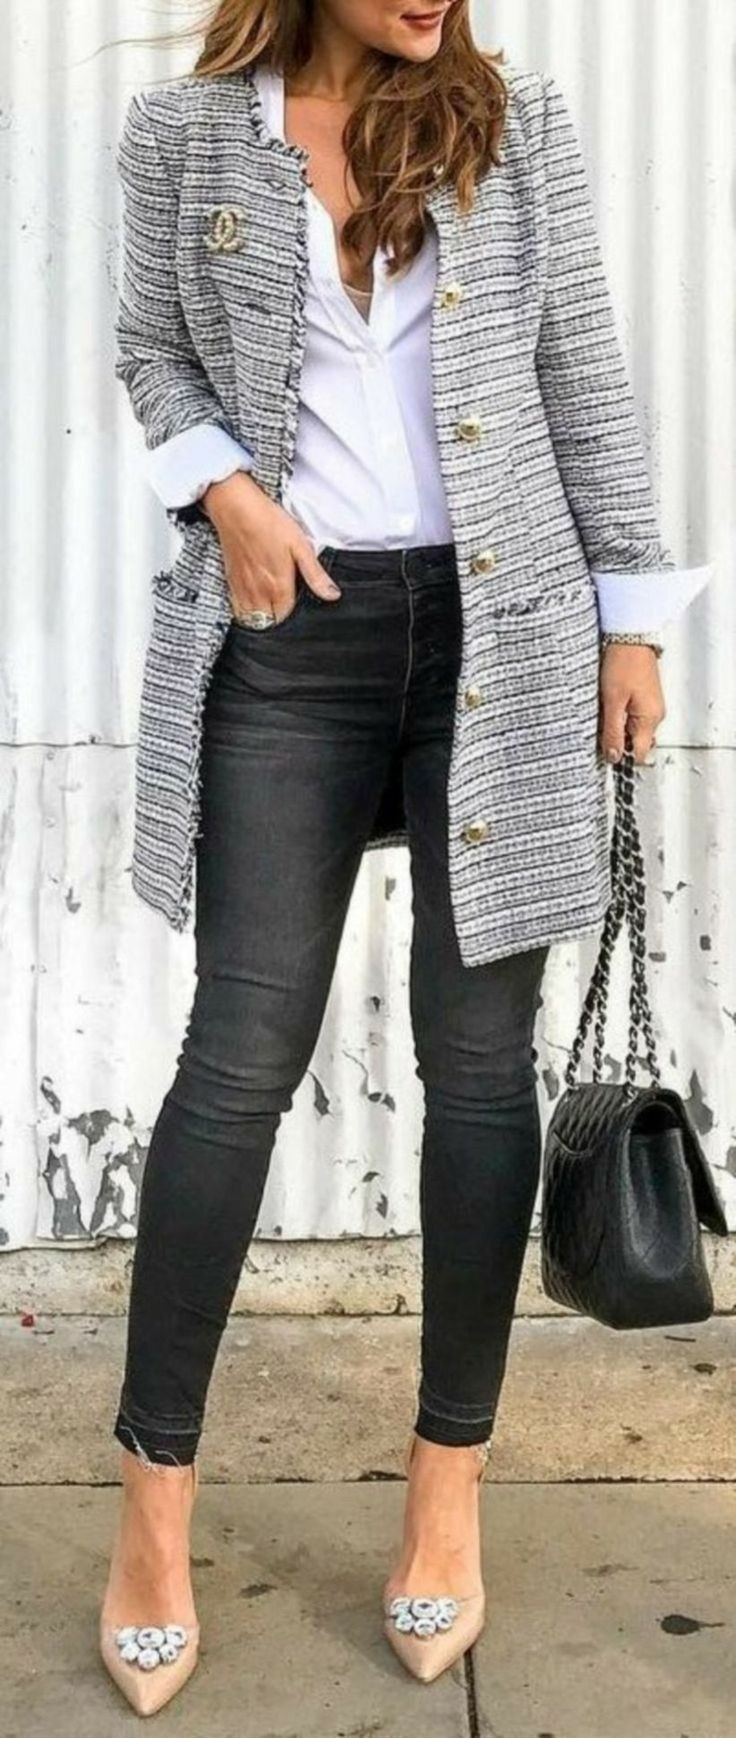 Casual chic winter outfits